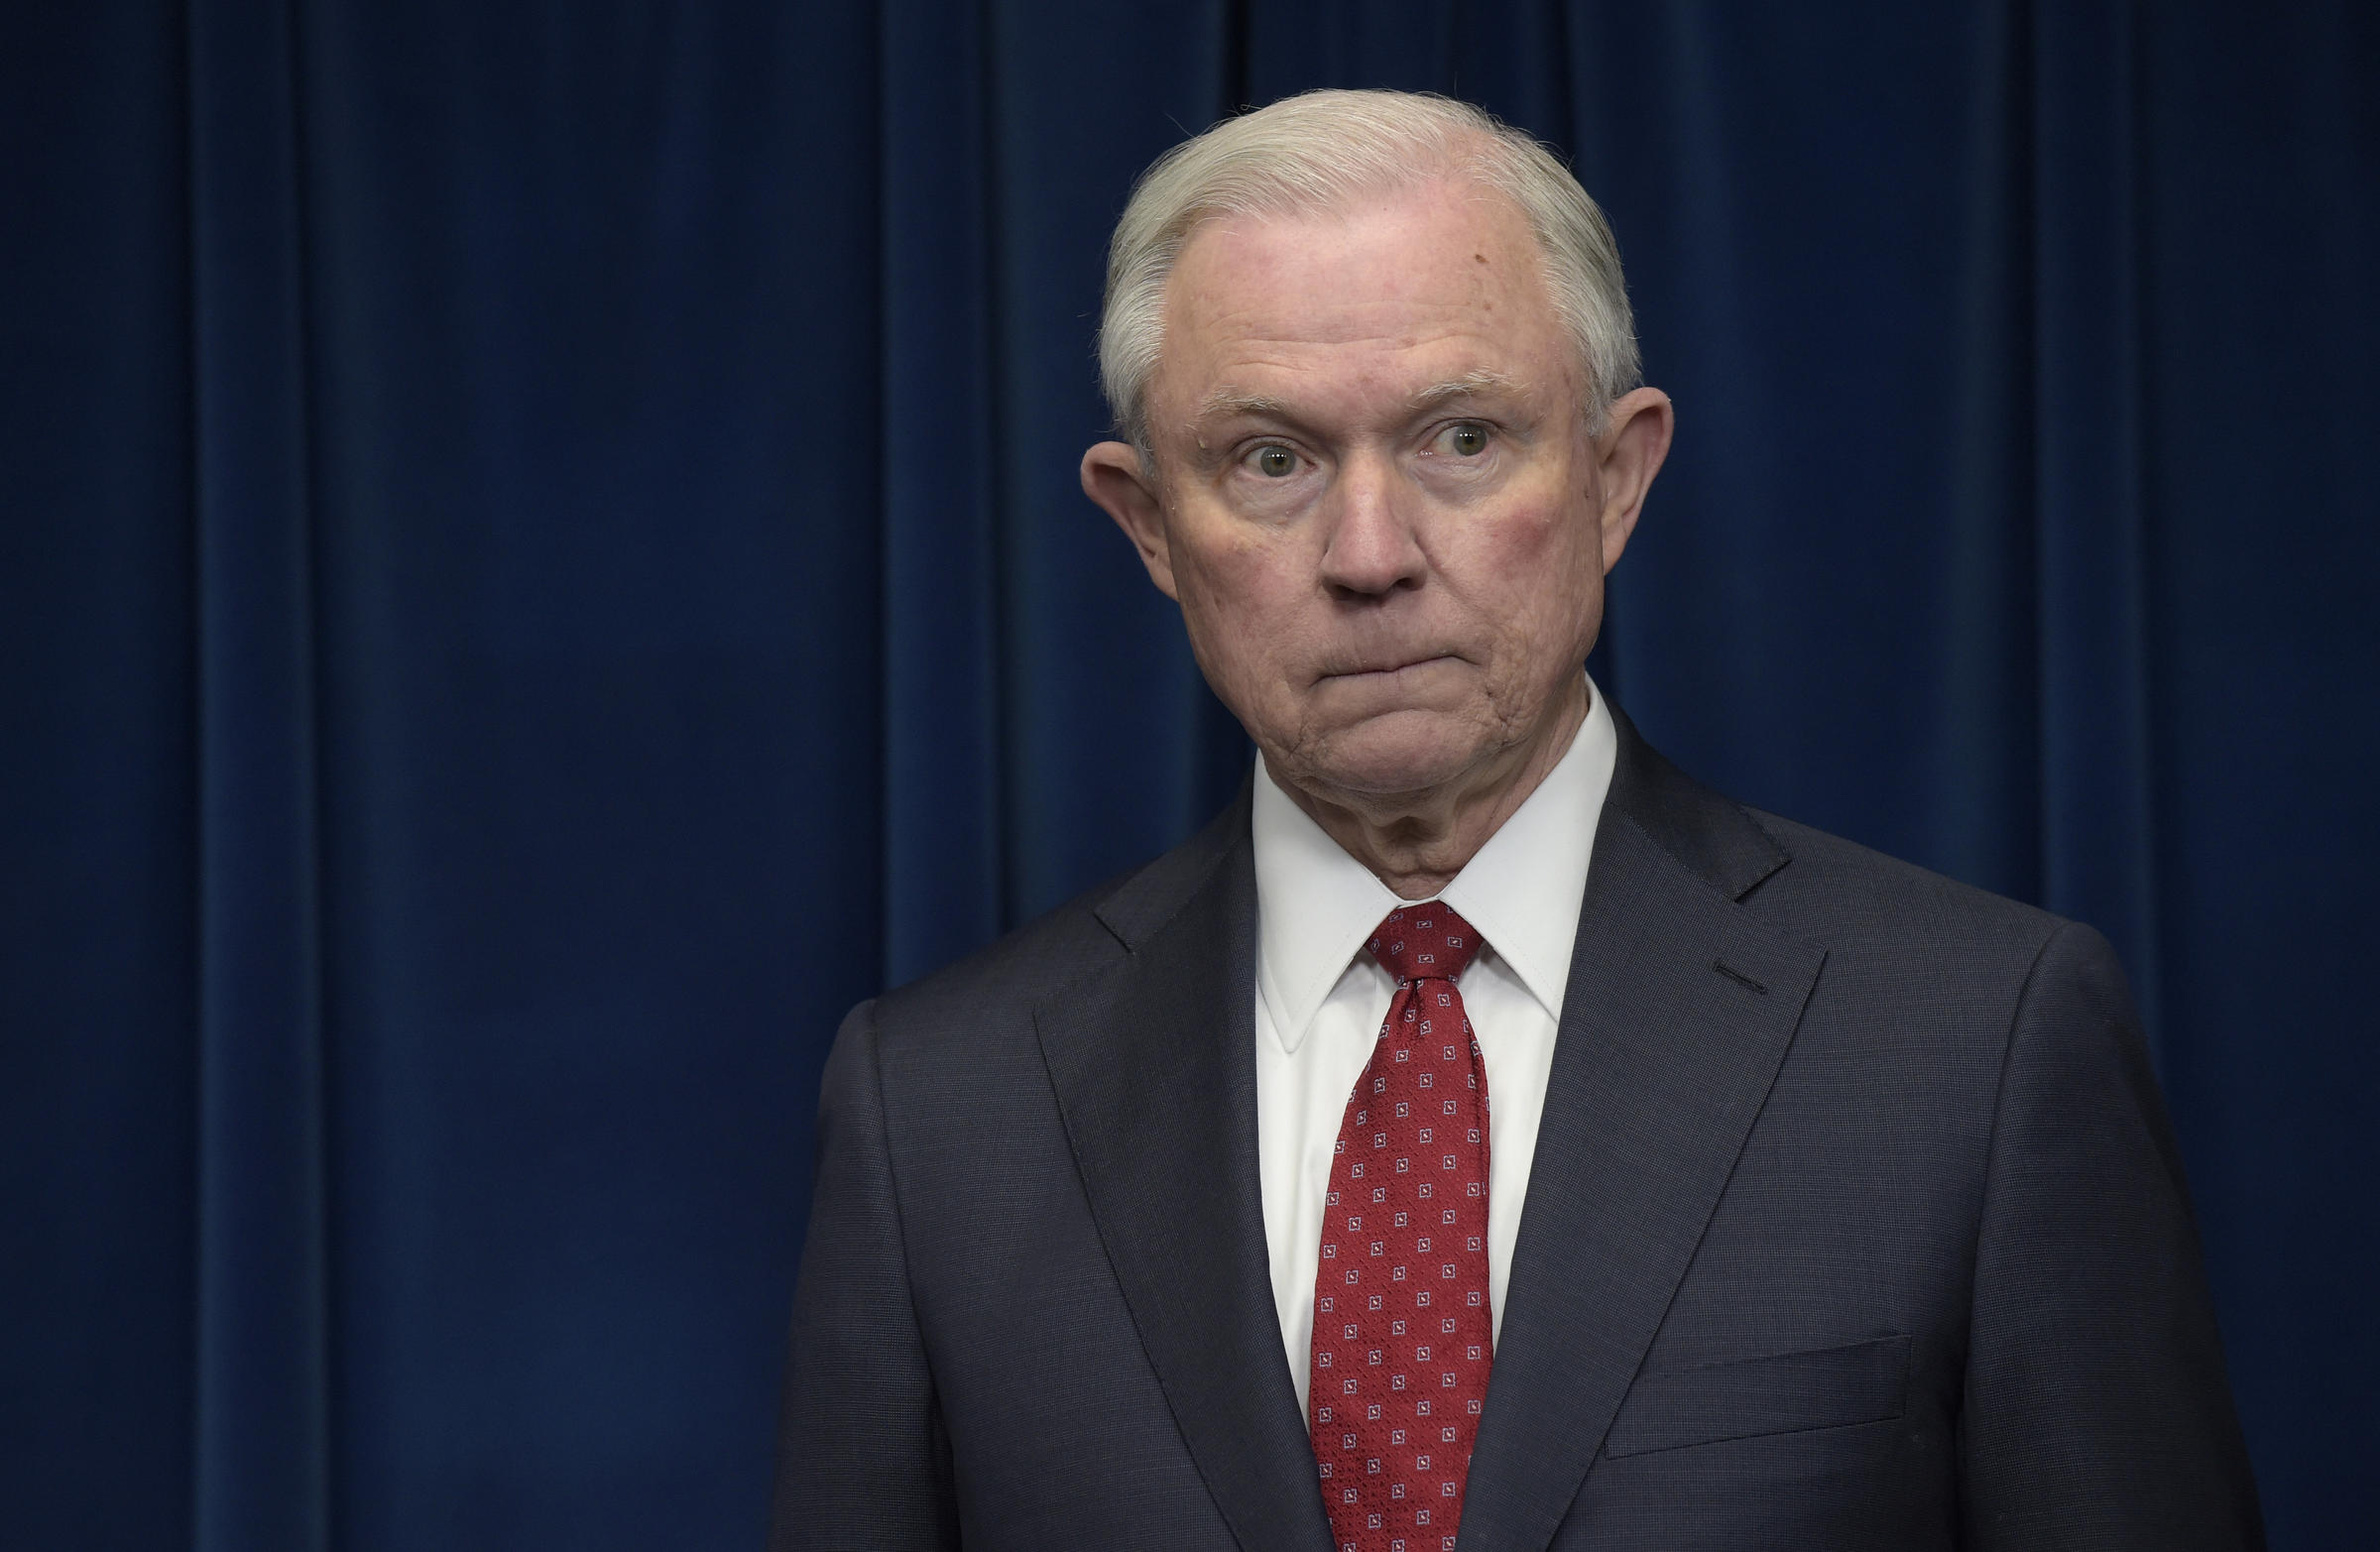 Sessions brands Russian Federation collusion claims a 'detestable lie'